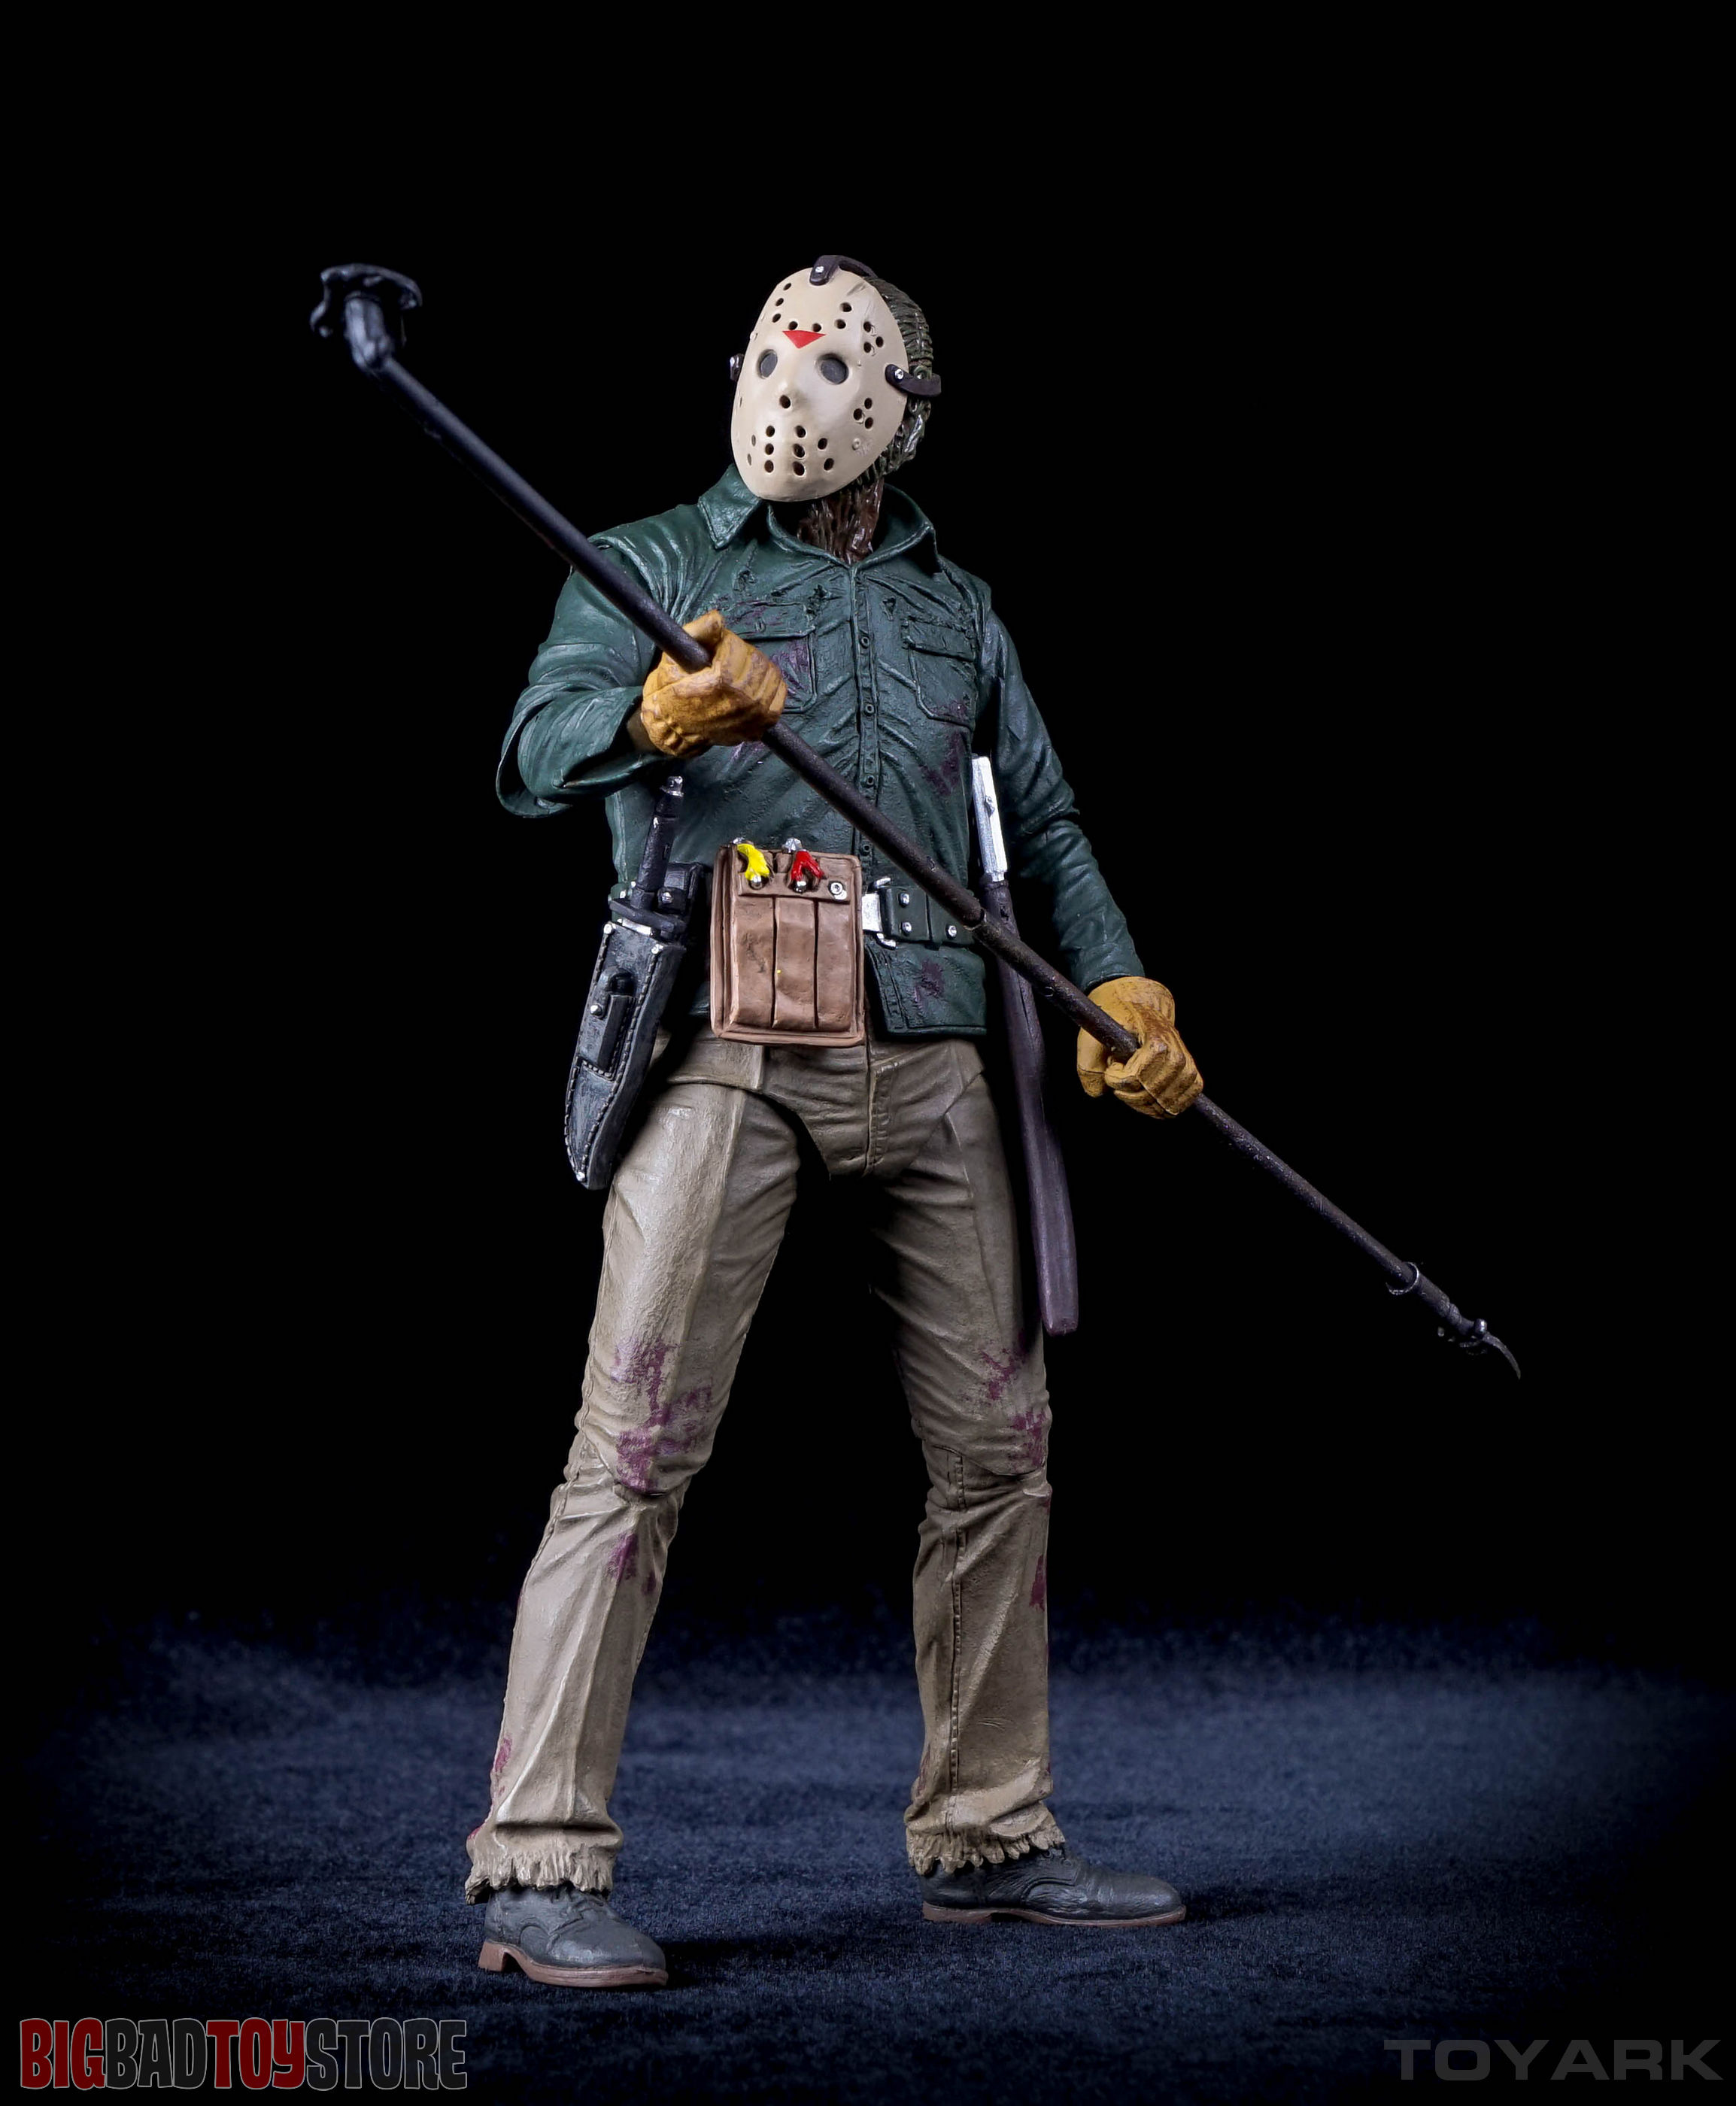 http://news.toyark.com/wp-content/uploads/sites/4/2016/01/NECA-Part-6-Ultimate-Jason-035.jpg